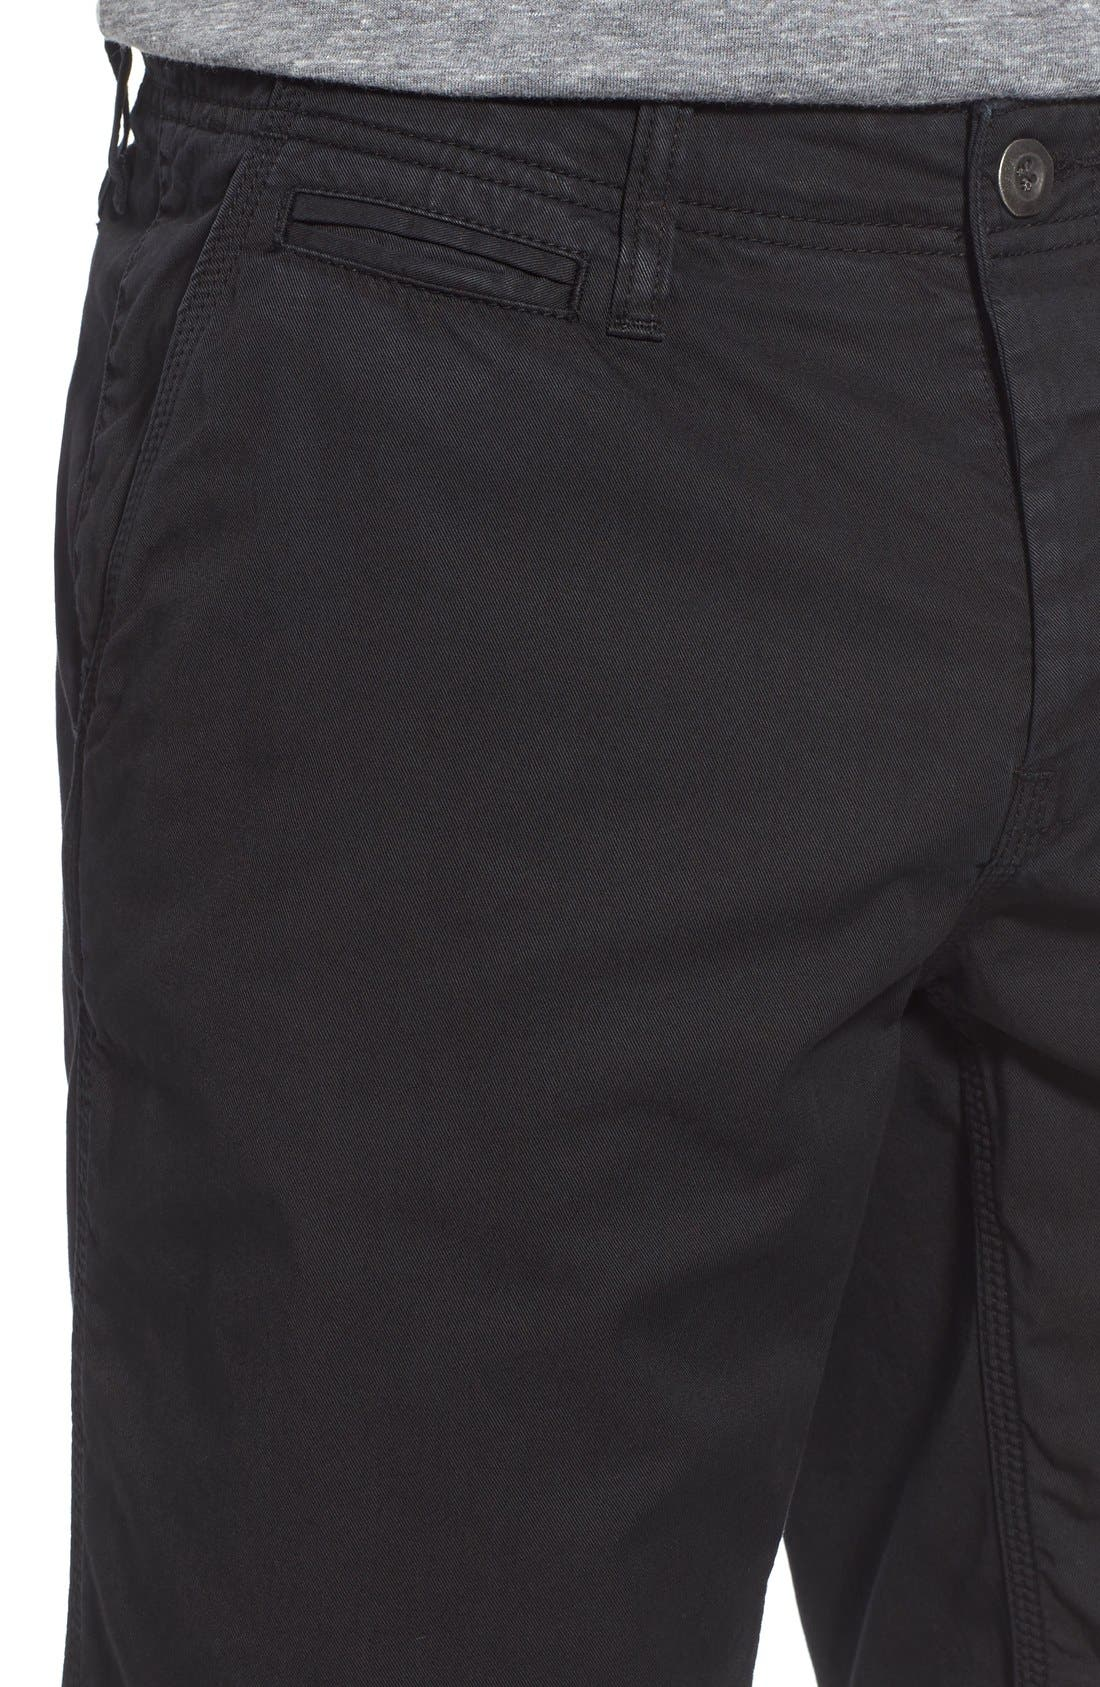 'Napa' Chino Shorts,                             Alternate thumbnail 44, color,